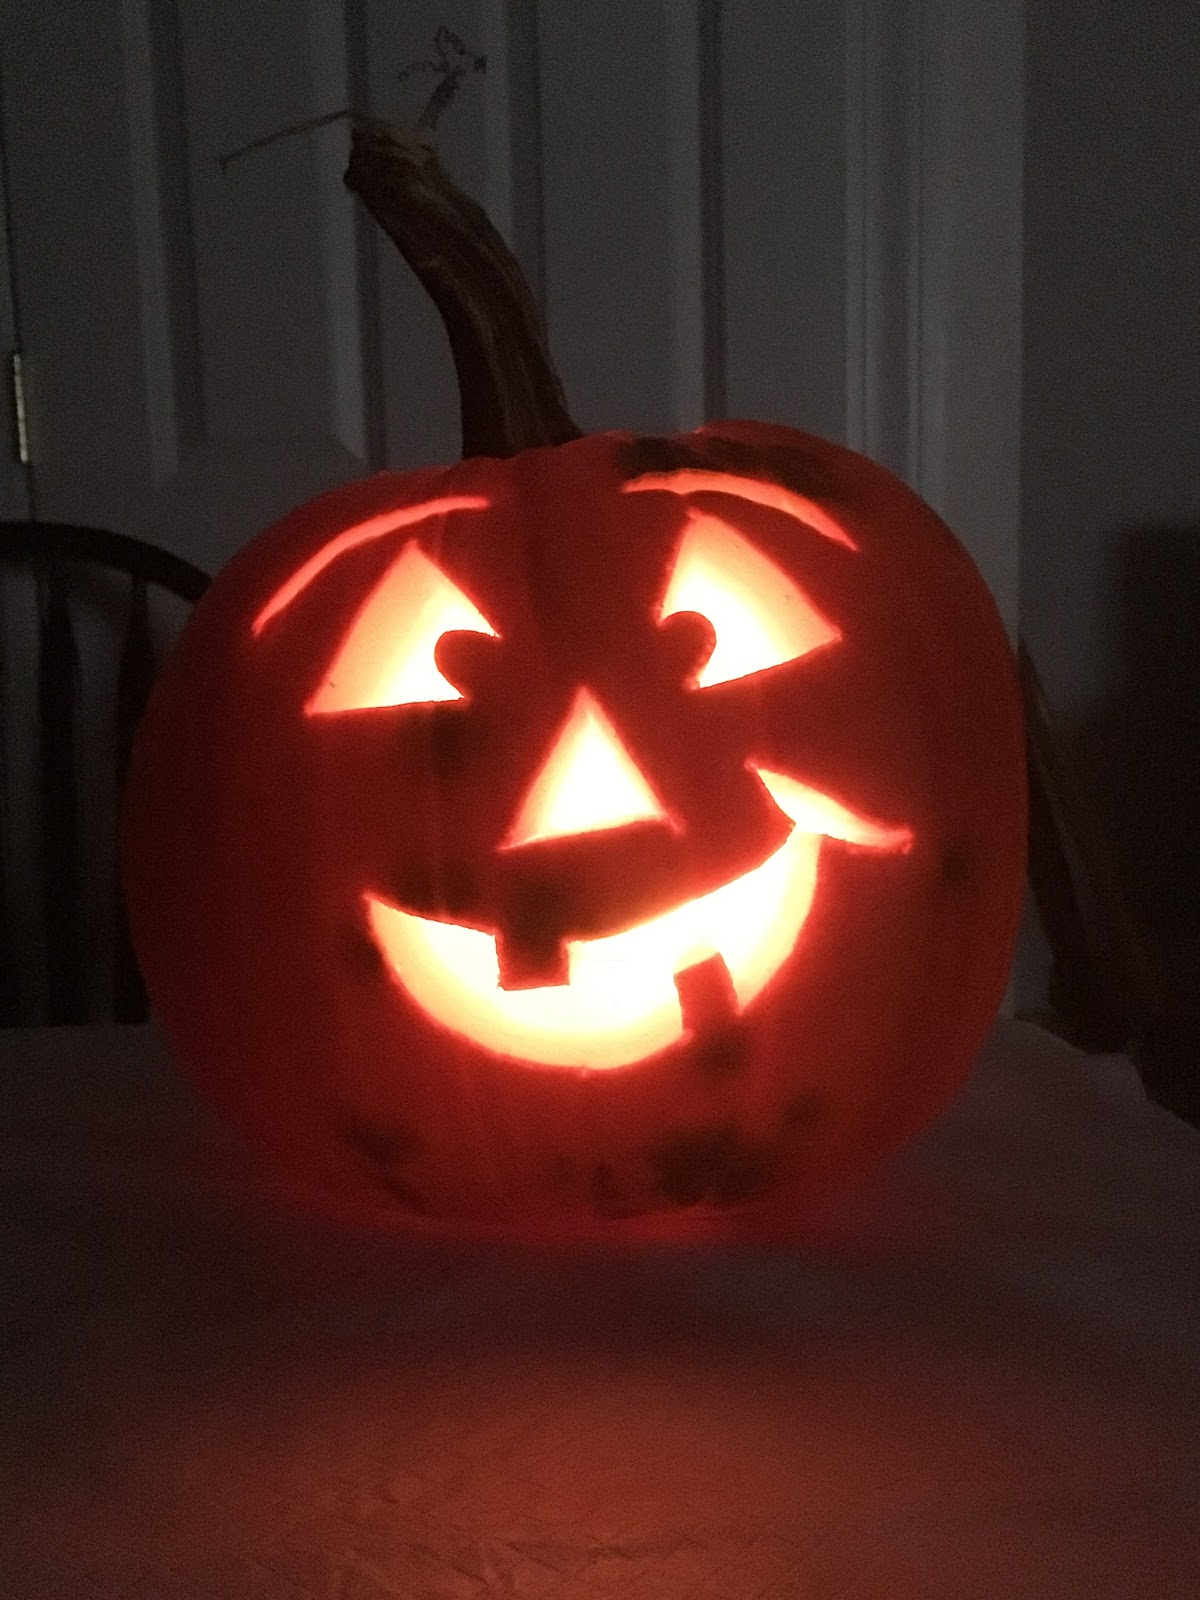 Mrs. Hoyt Brought Home All The Writing And Asked Mr. Hoyt To Carve The  Pumpkin For Us. The Majority Of Students Wanted A Happy Faced Pumpkin!